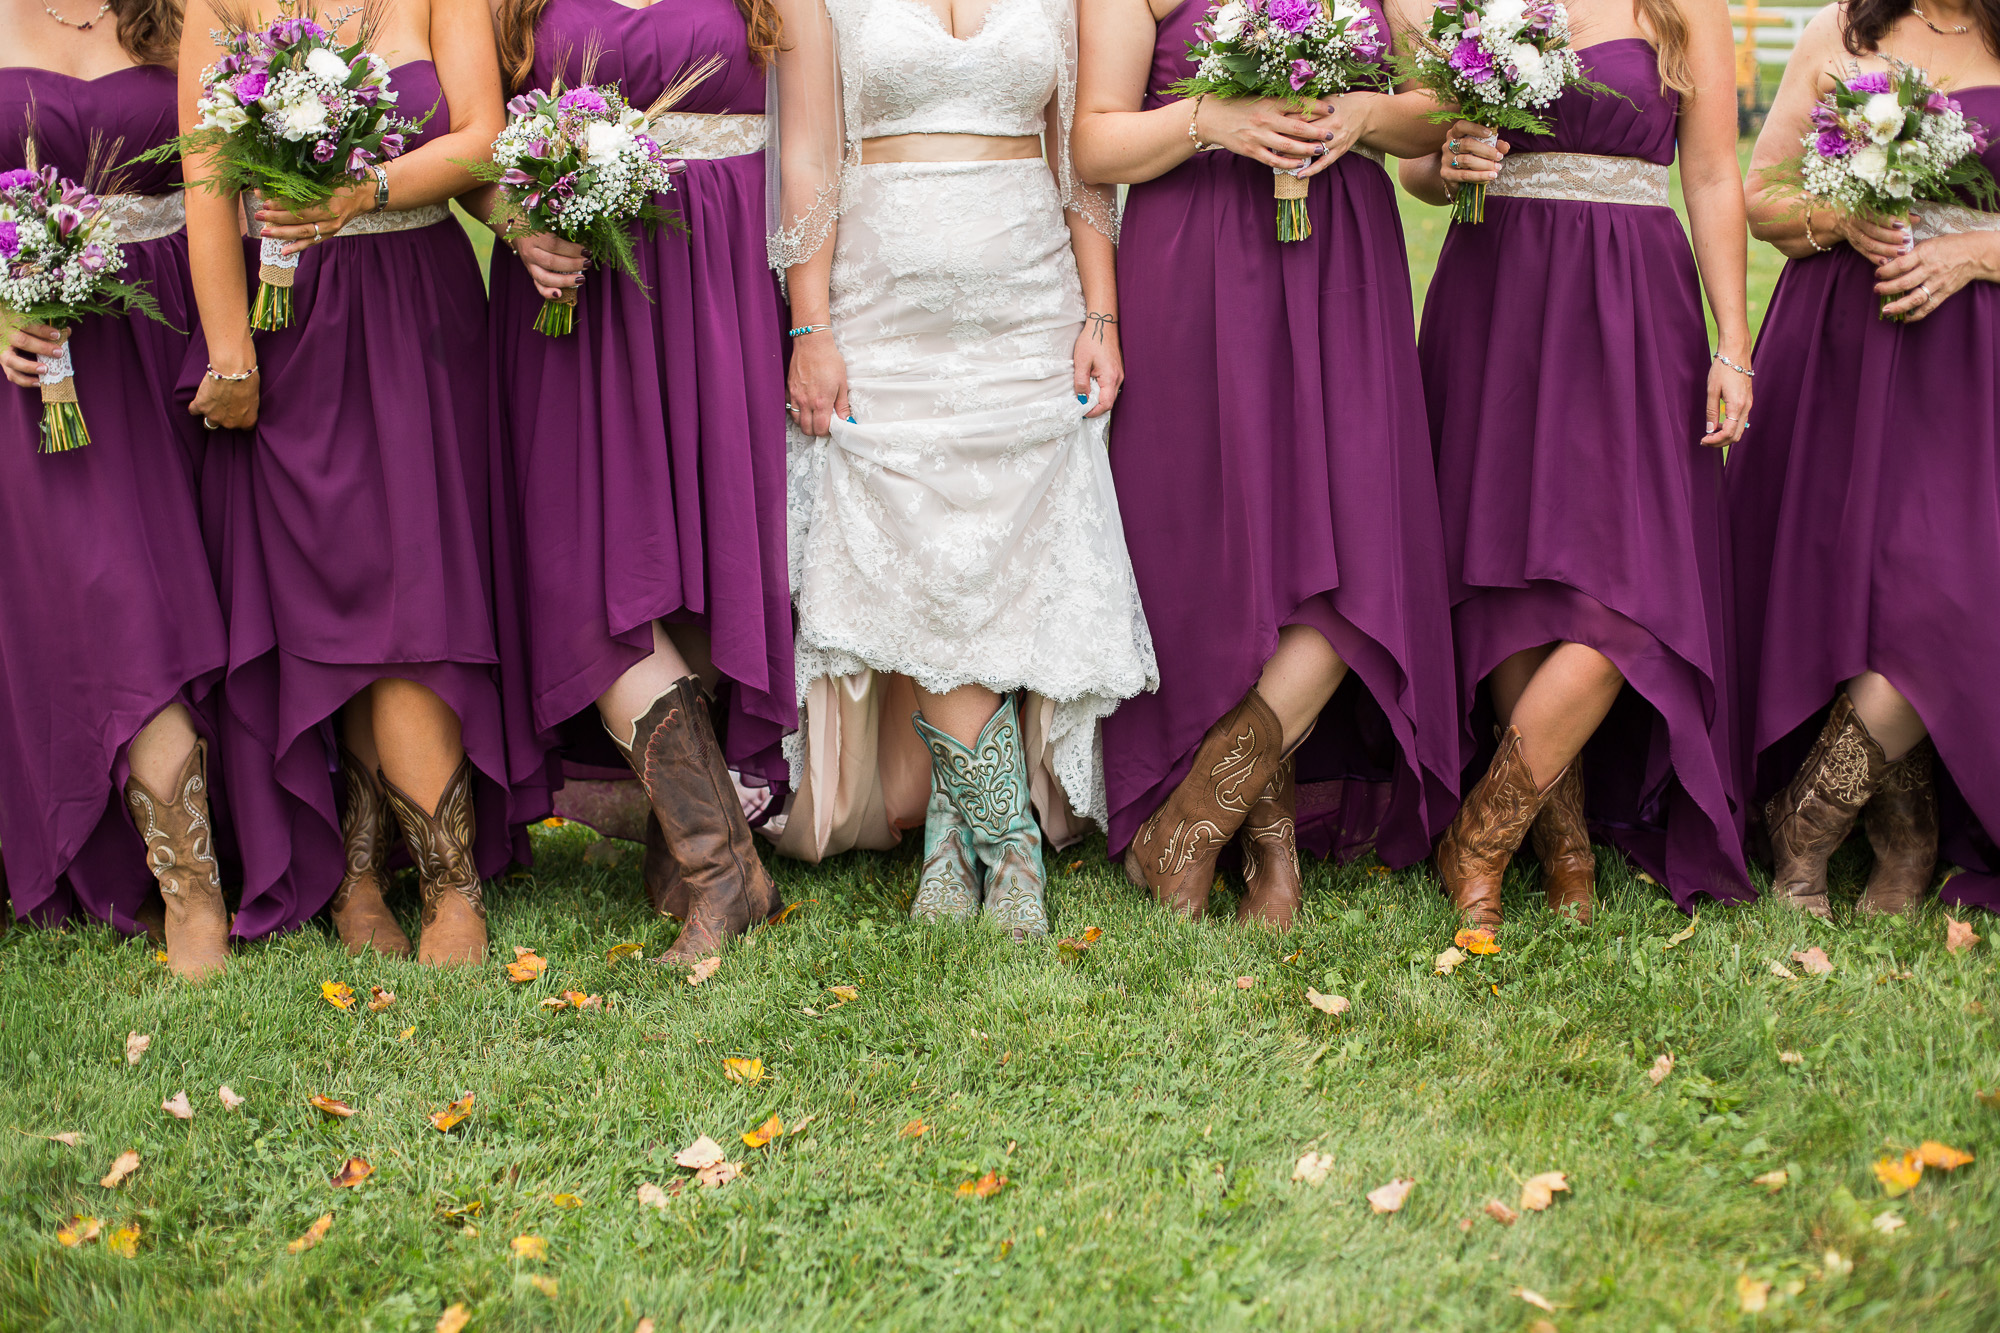 bride and bridesmaids with cowboy boots and plum purple dresses